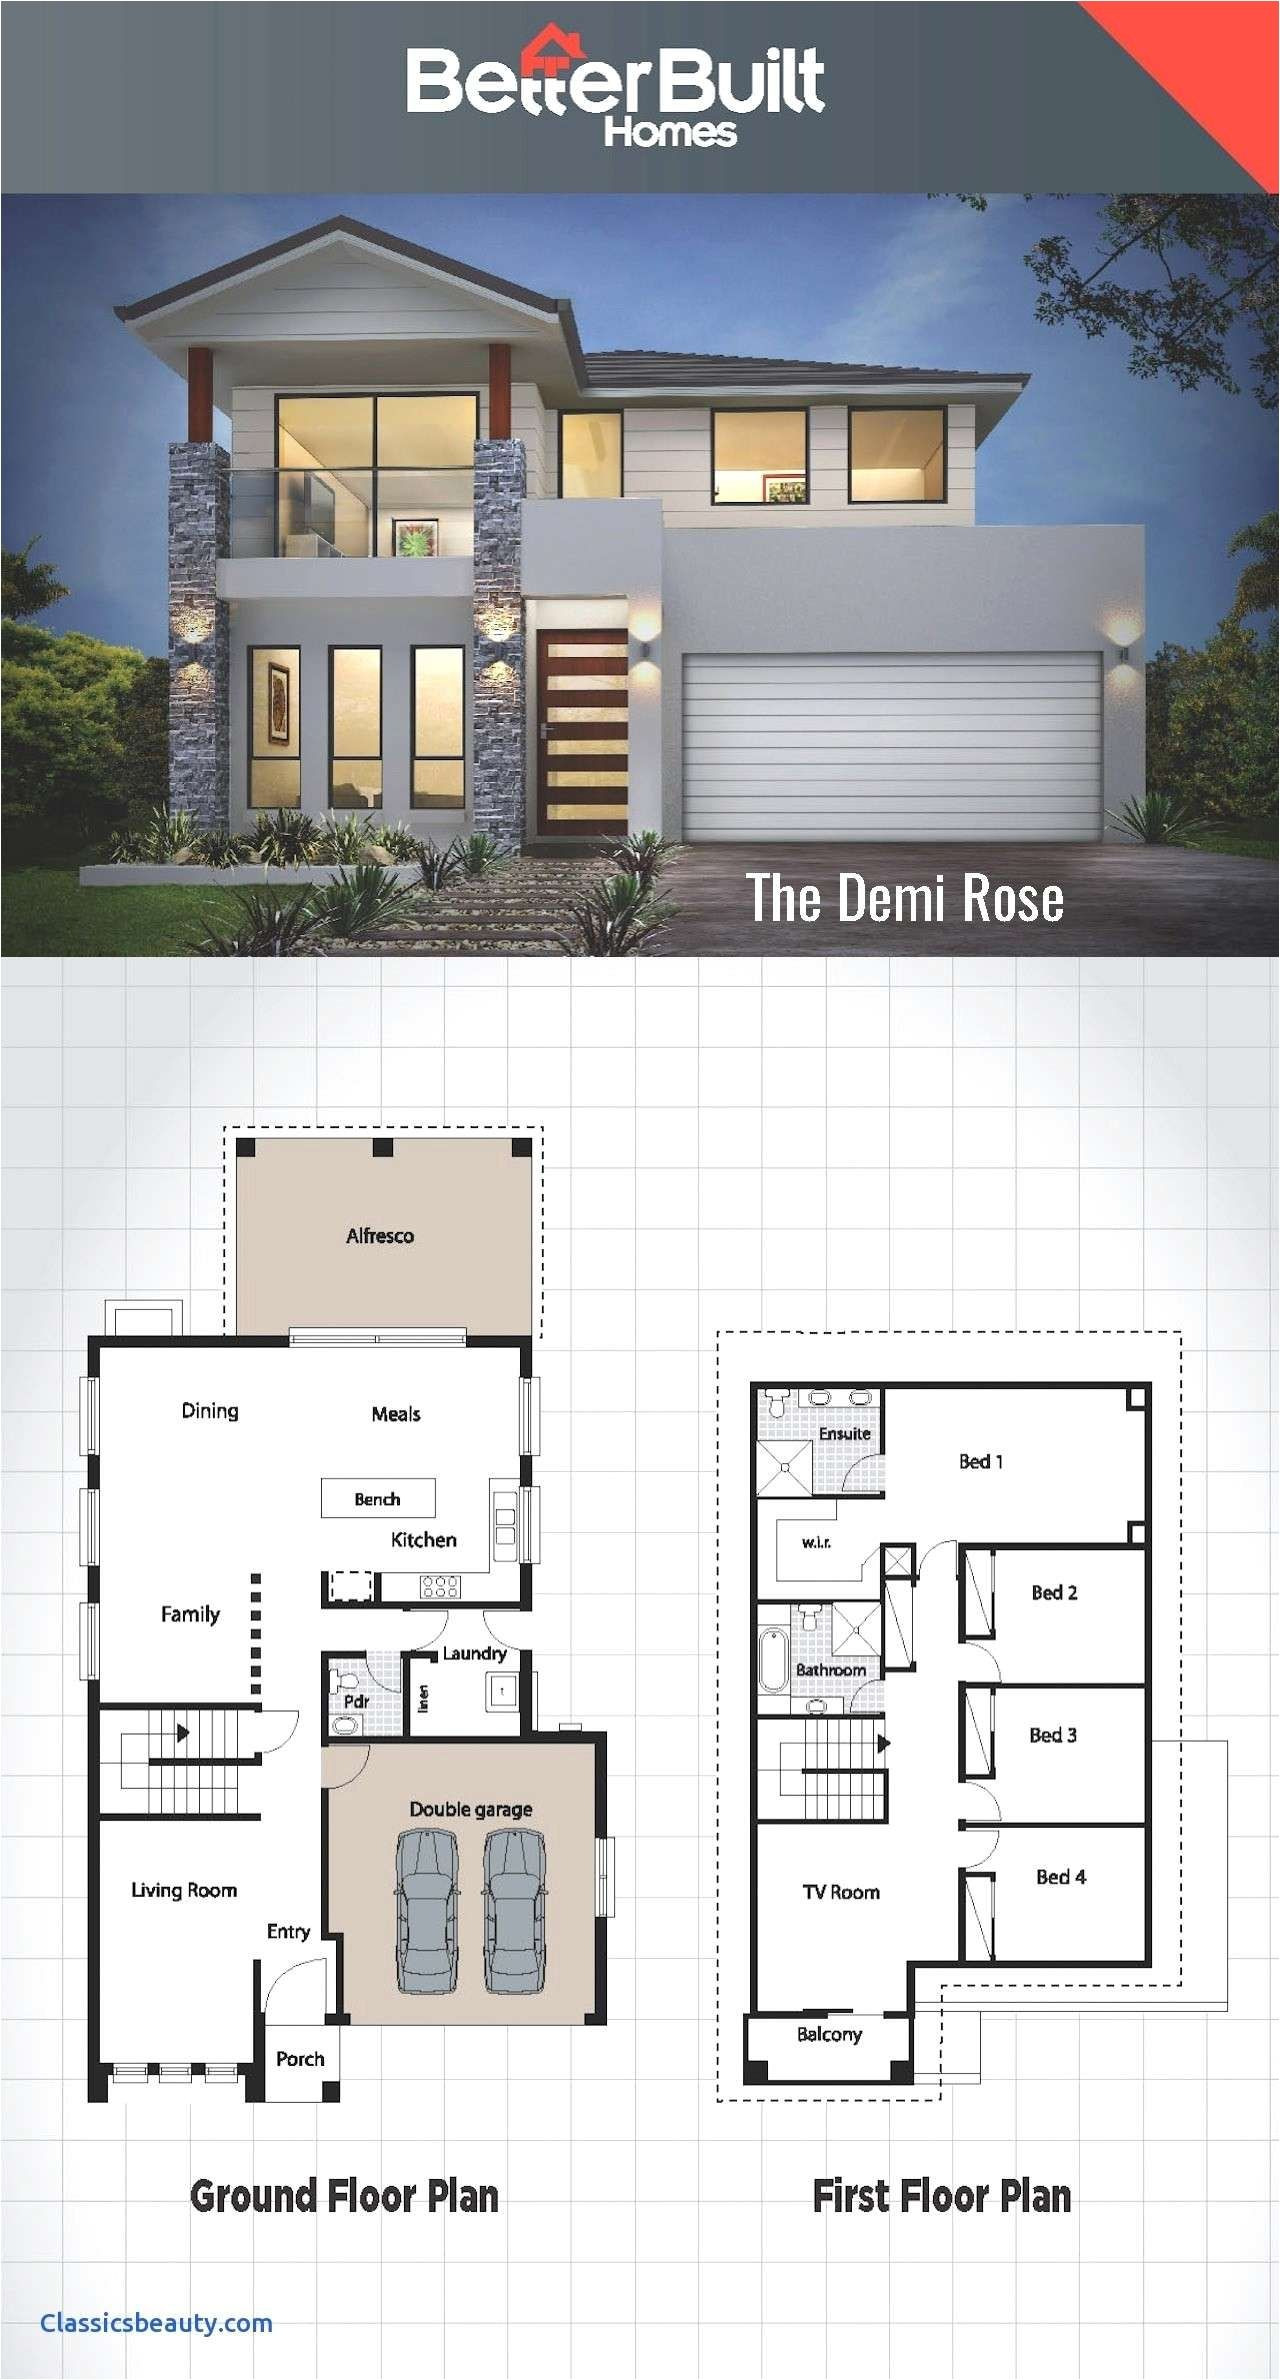 Houses that Can Be Built for Under 150k New House Plans Under 150k Philippines